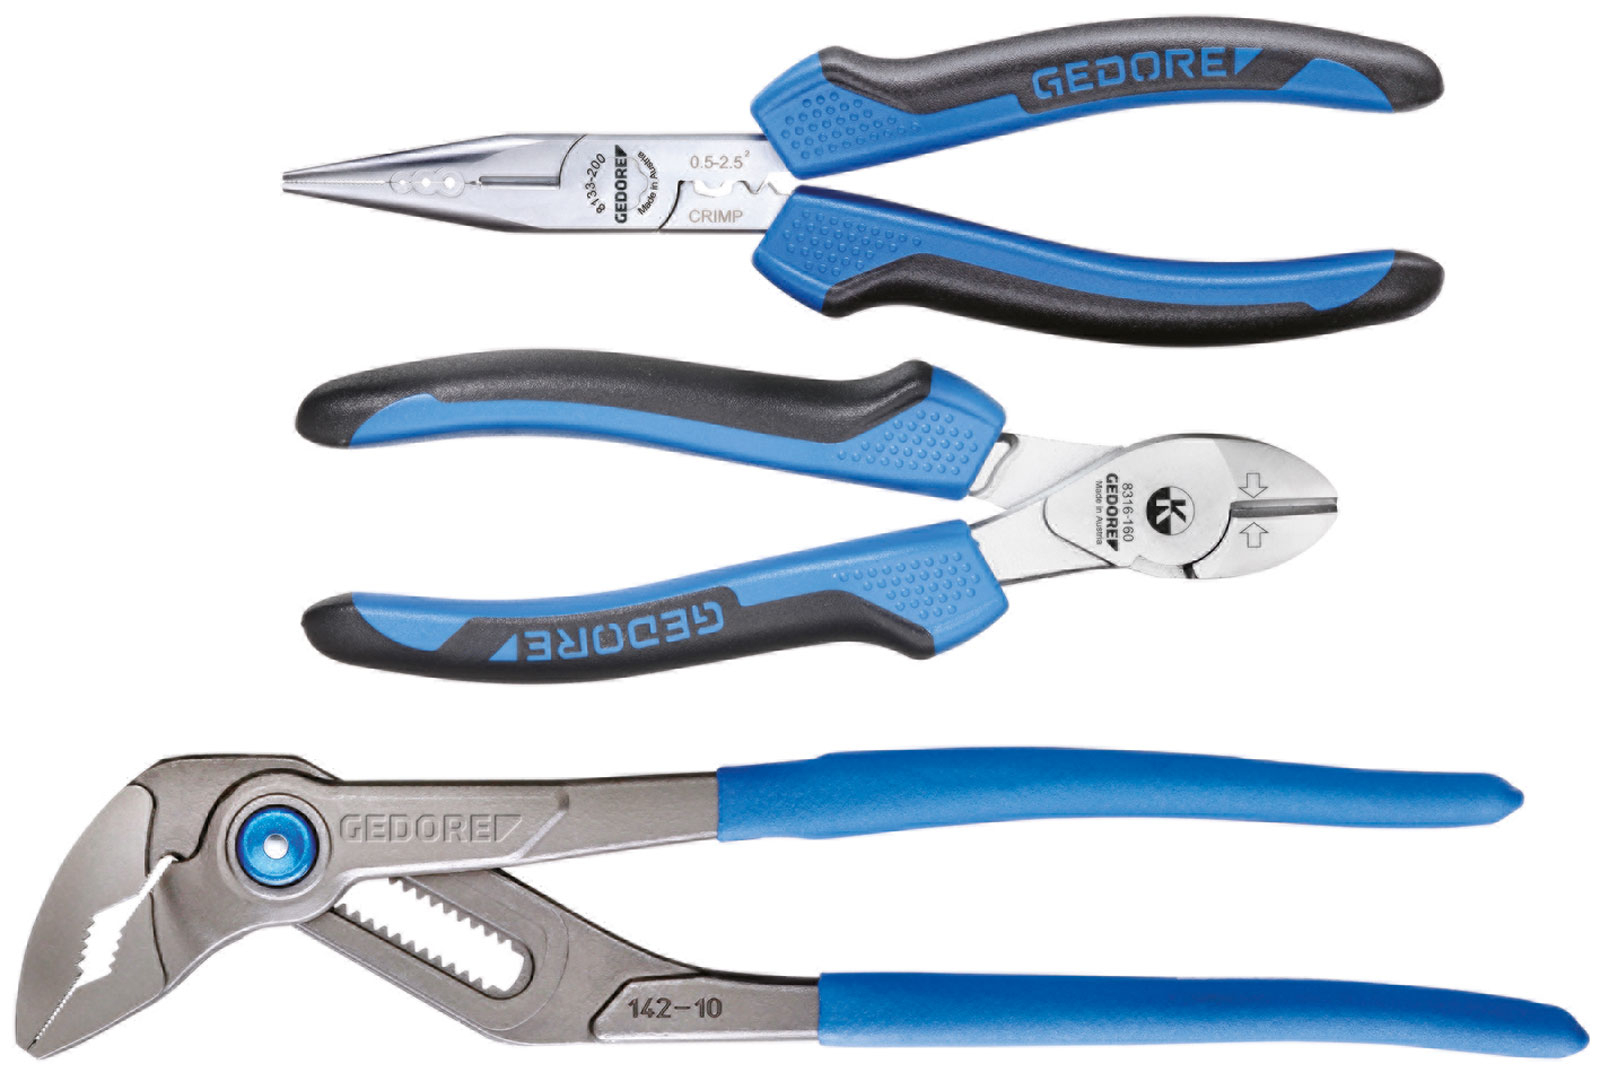 Gedore 1102-008 Pliers 3 piece Set in L-BOXX Mini